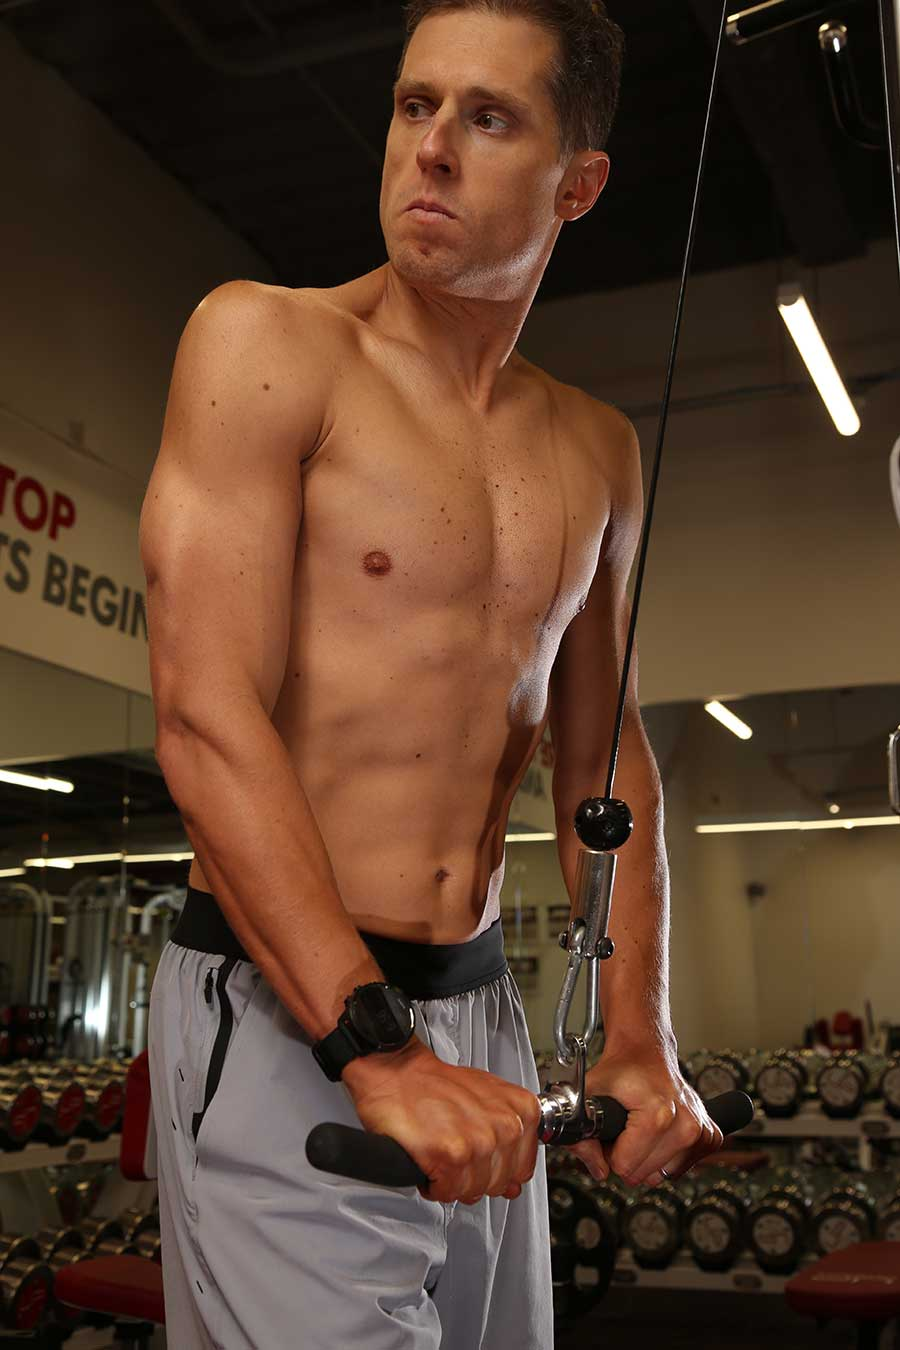 Shaun-in-the-gym-pulldown